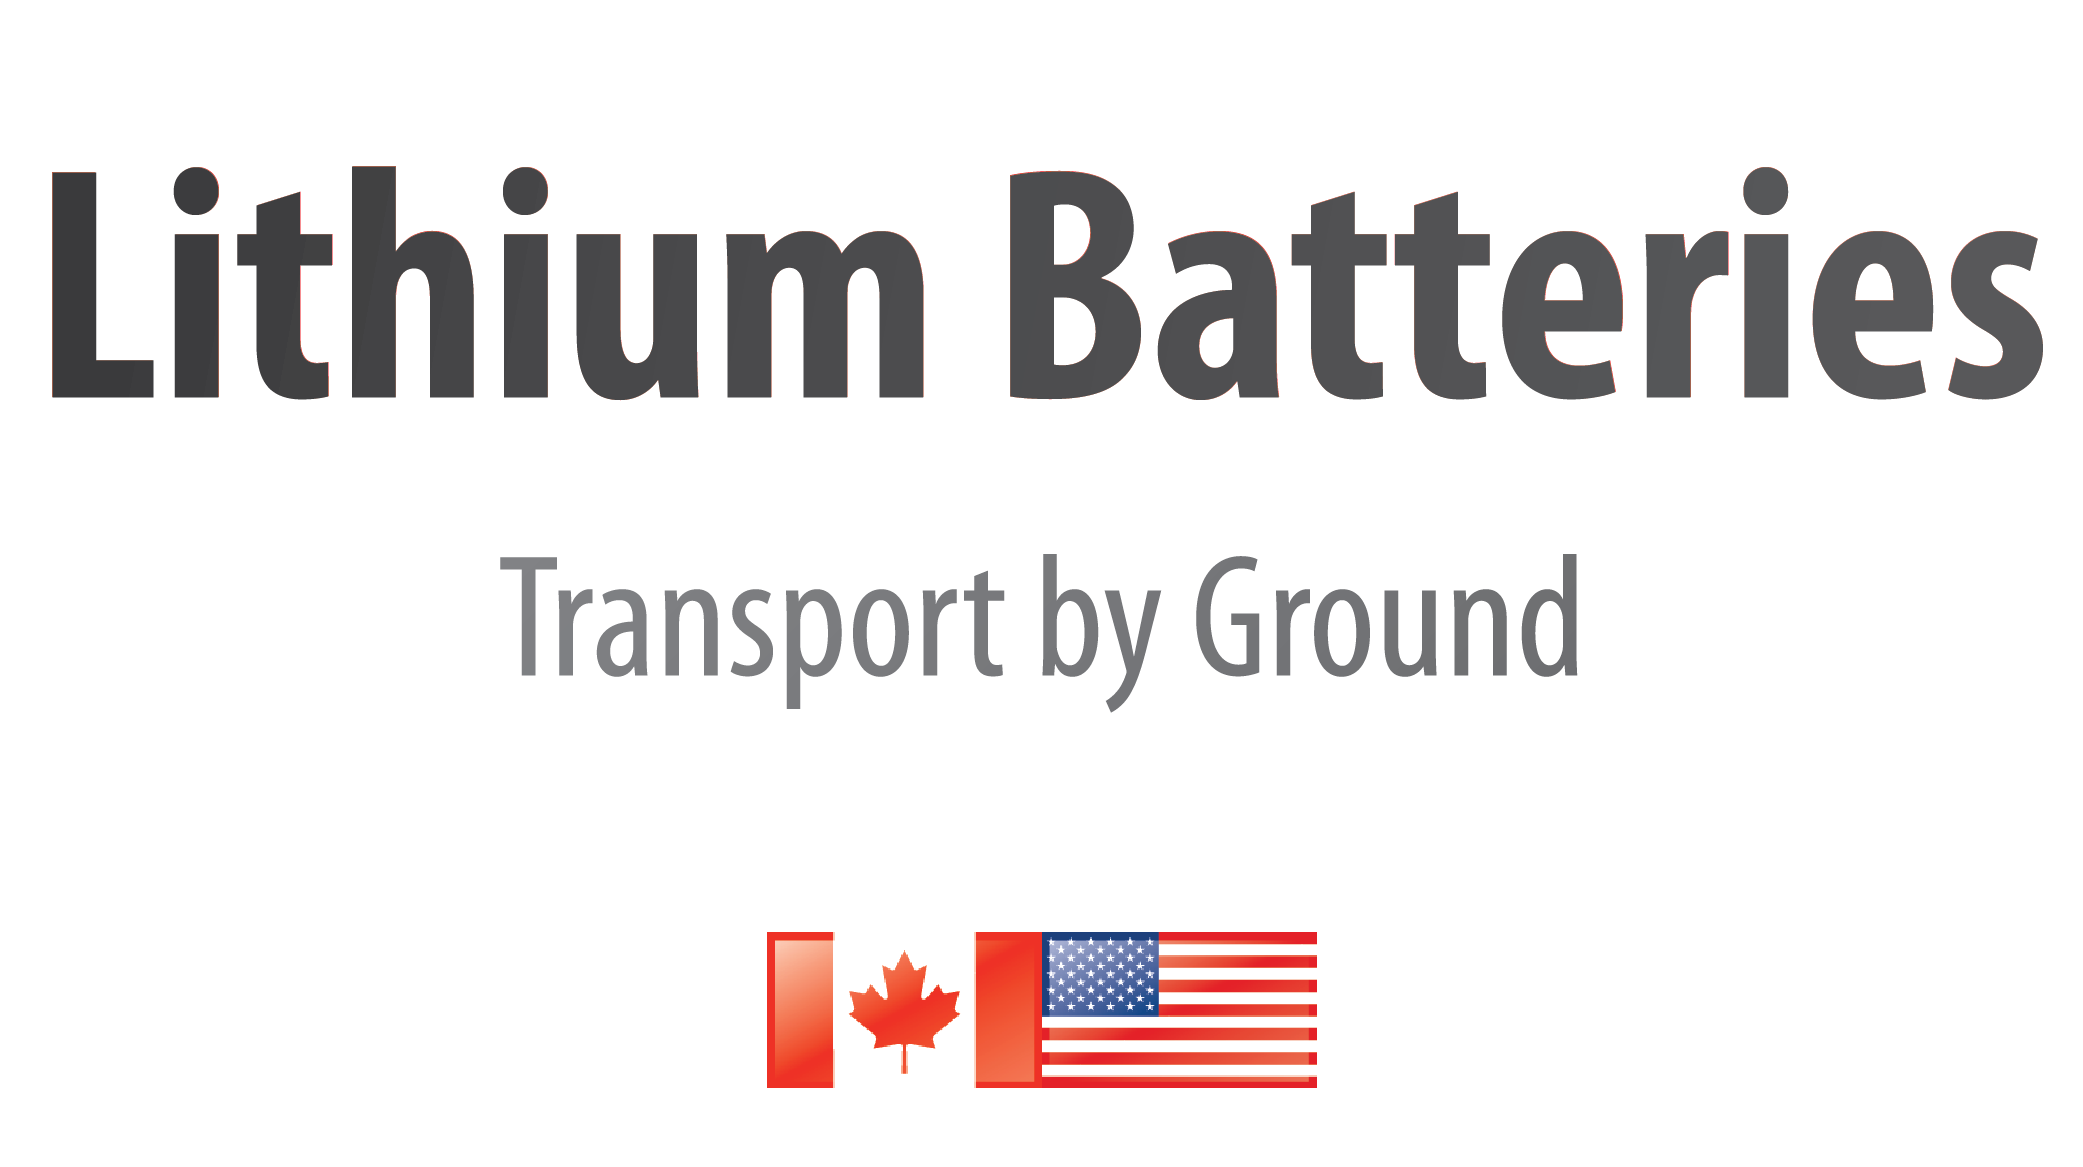 Small Lithium Batteries by Ground in North America